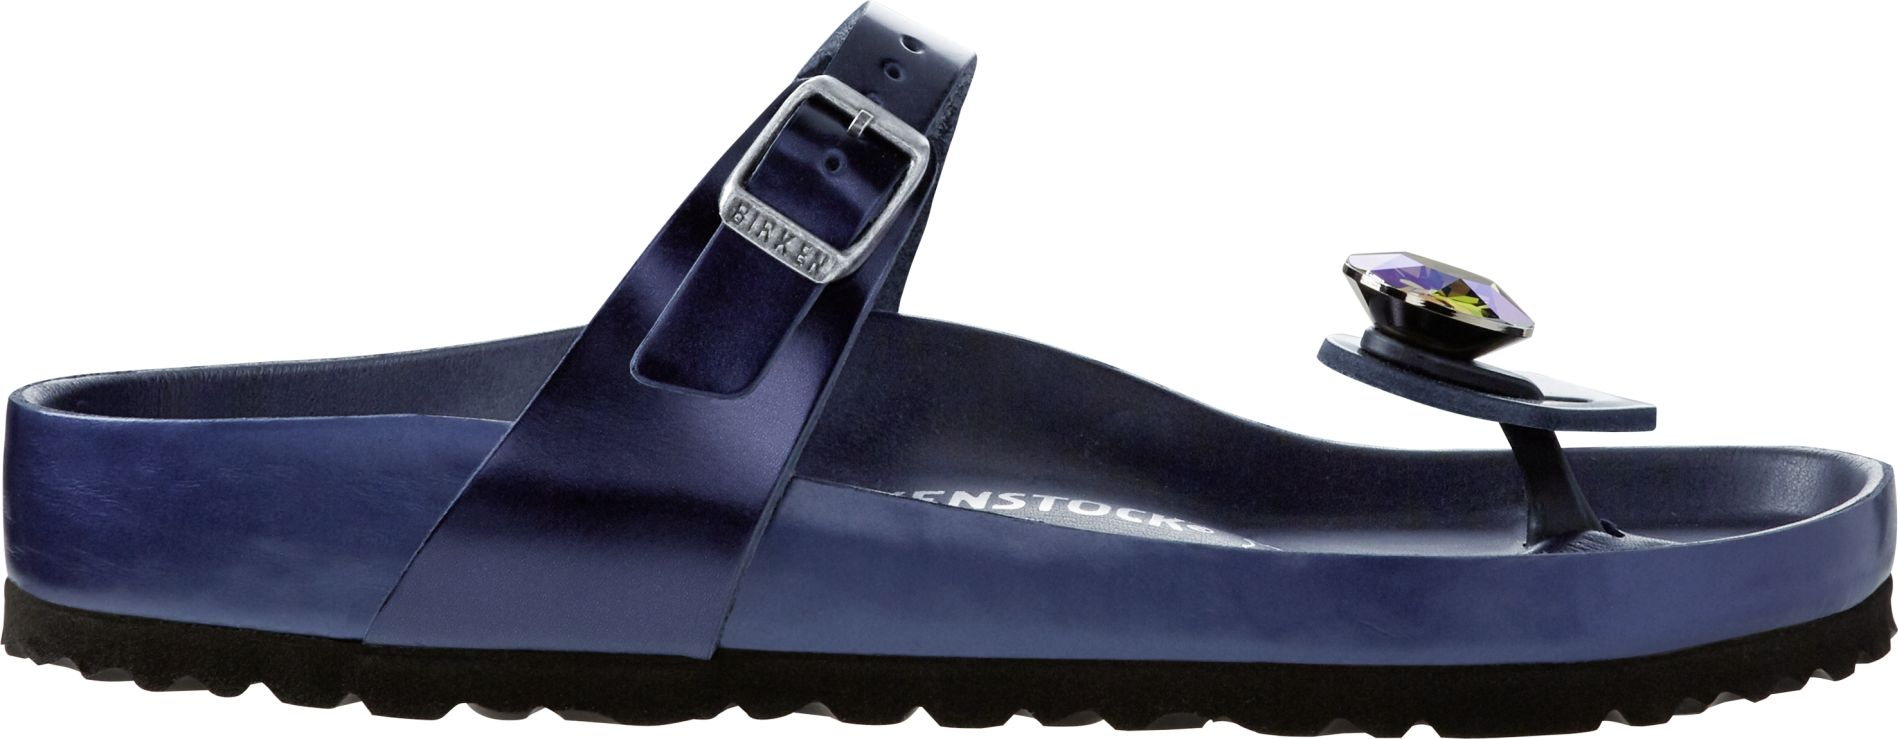 97f7950f745 Preview  Birkenstock Kaduna Diamond Metallic Blue · Preview  Birkenstock  Kaduna Diamond Metallic Blue ...